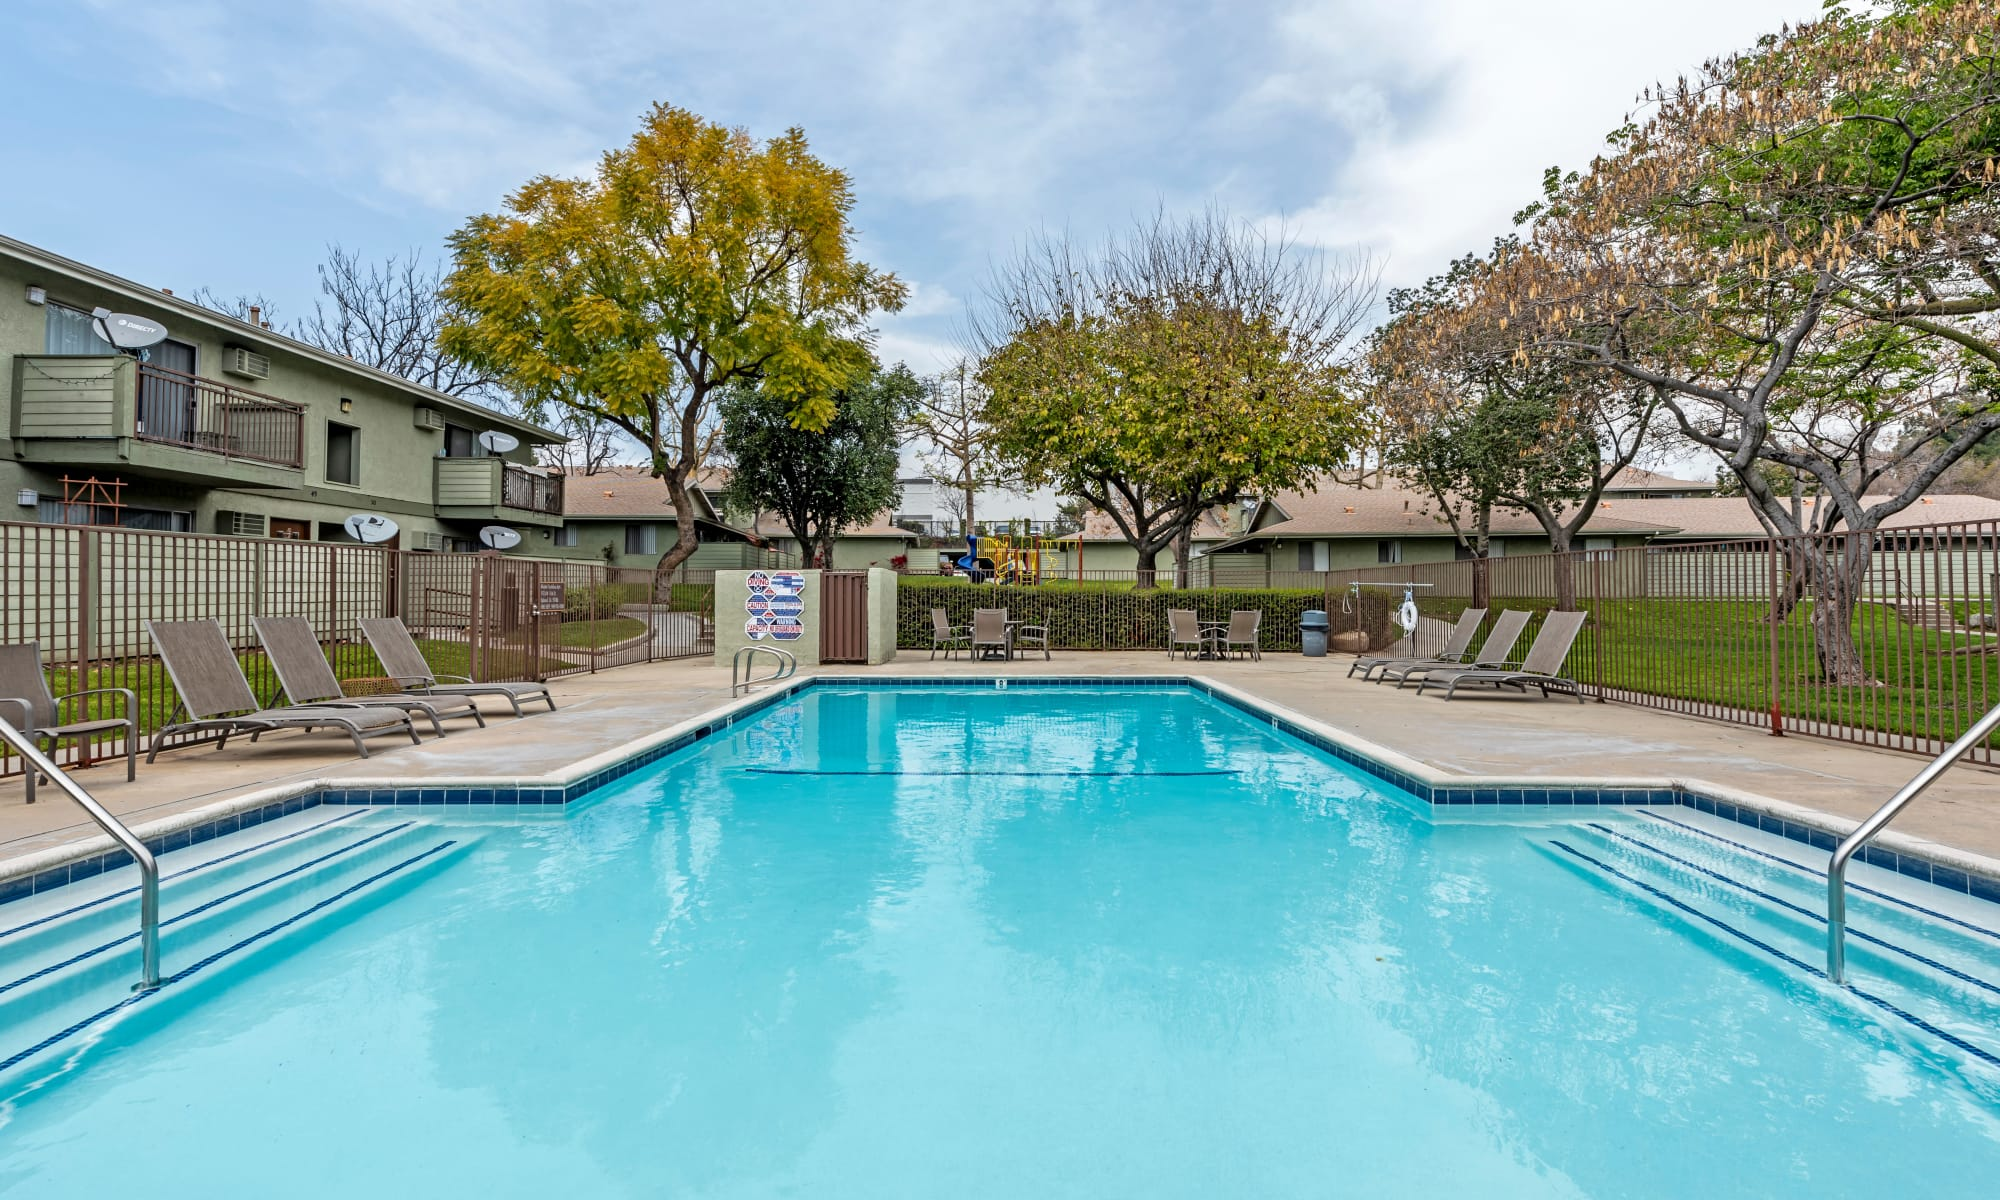 Apartments in Upland, CA